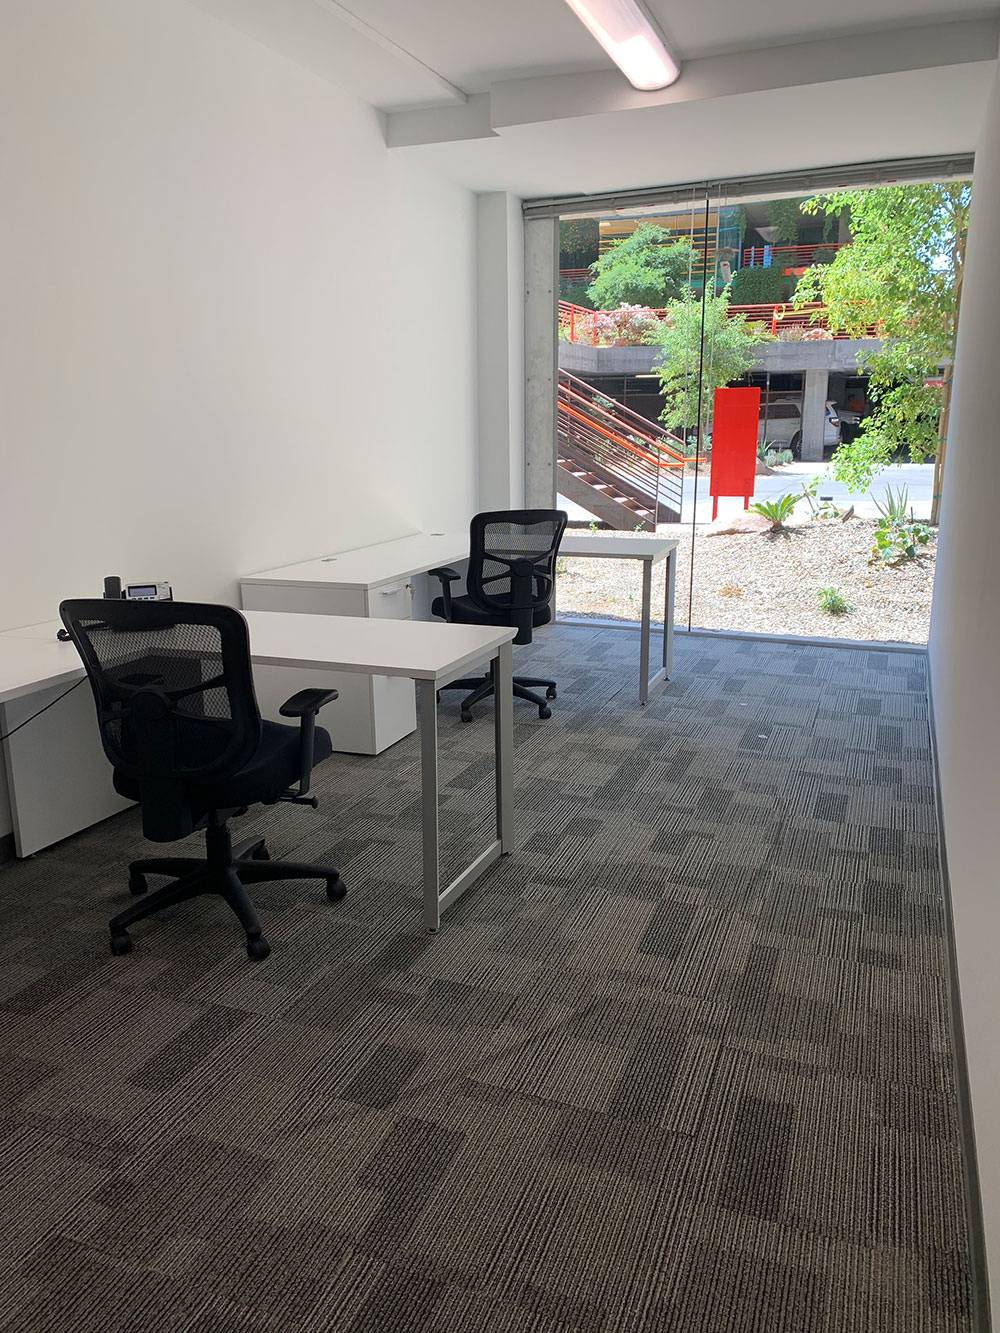 2-desk business suite featuring phone, internet, fully furnished, access to building amenities